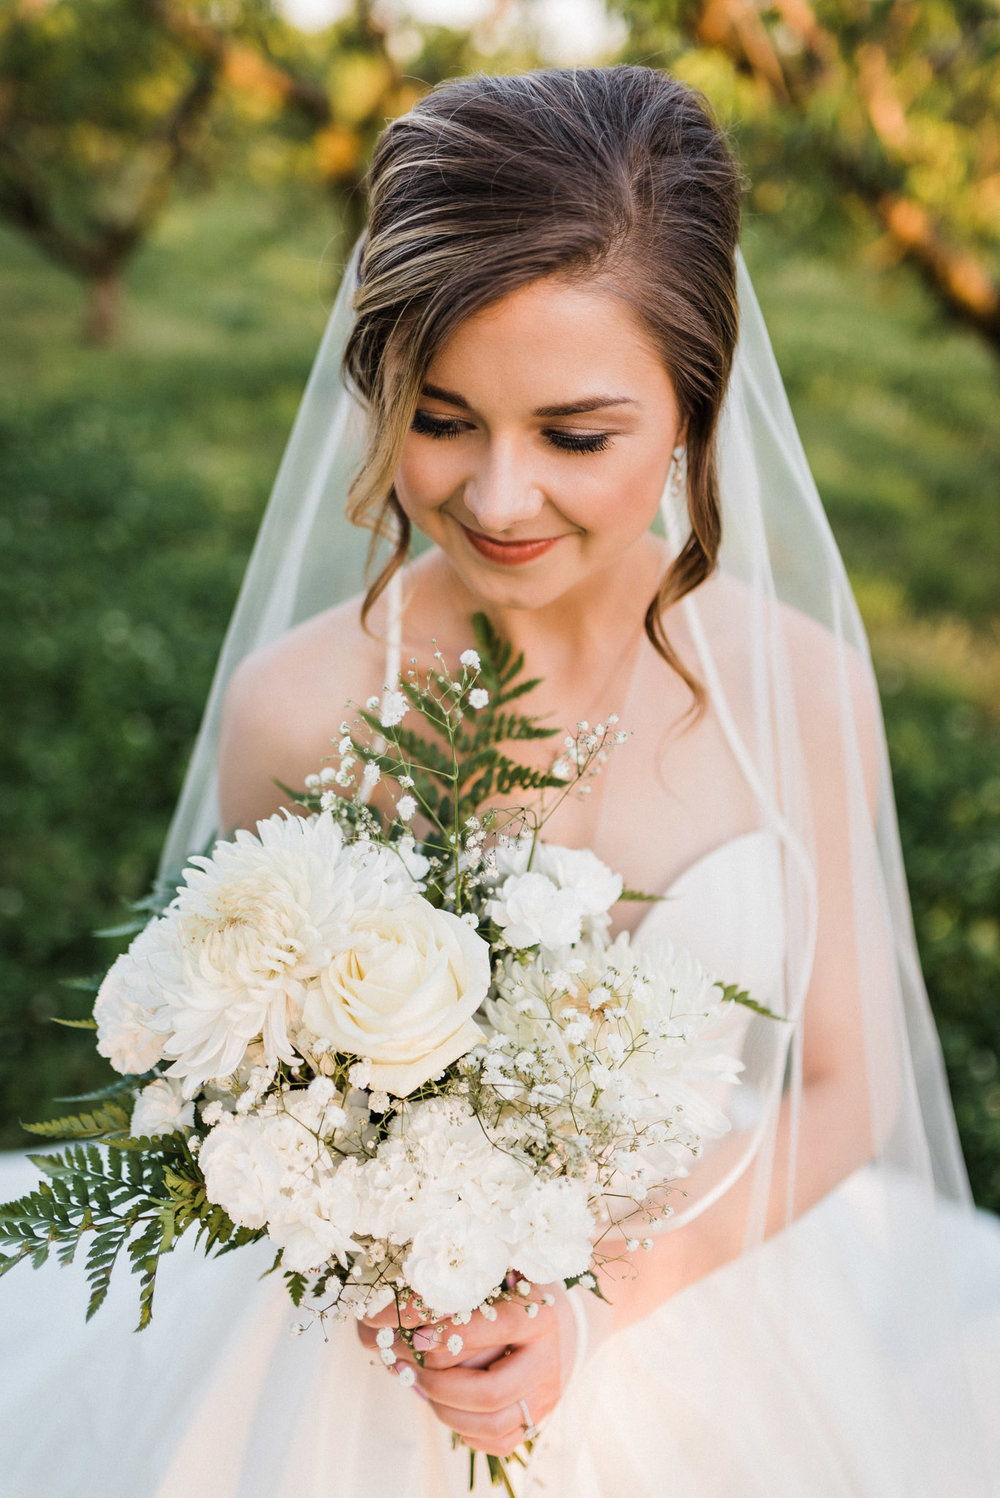 Tanner Burge Photography - Megan's Summer Orchard Bridals.jpg